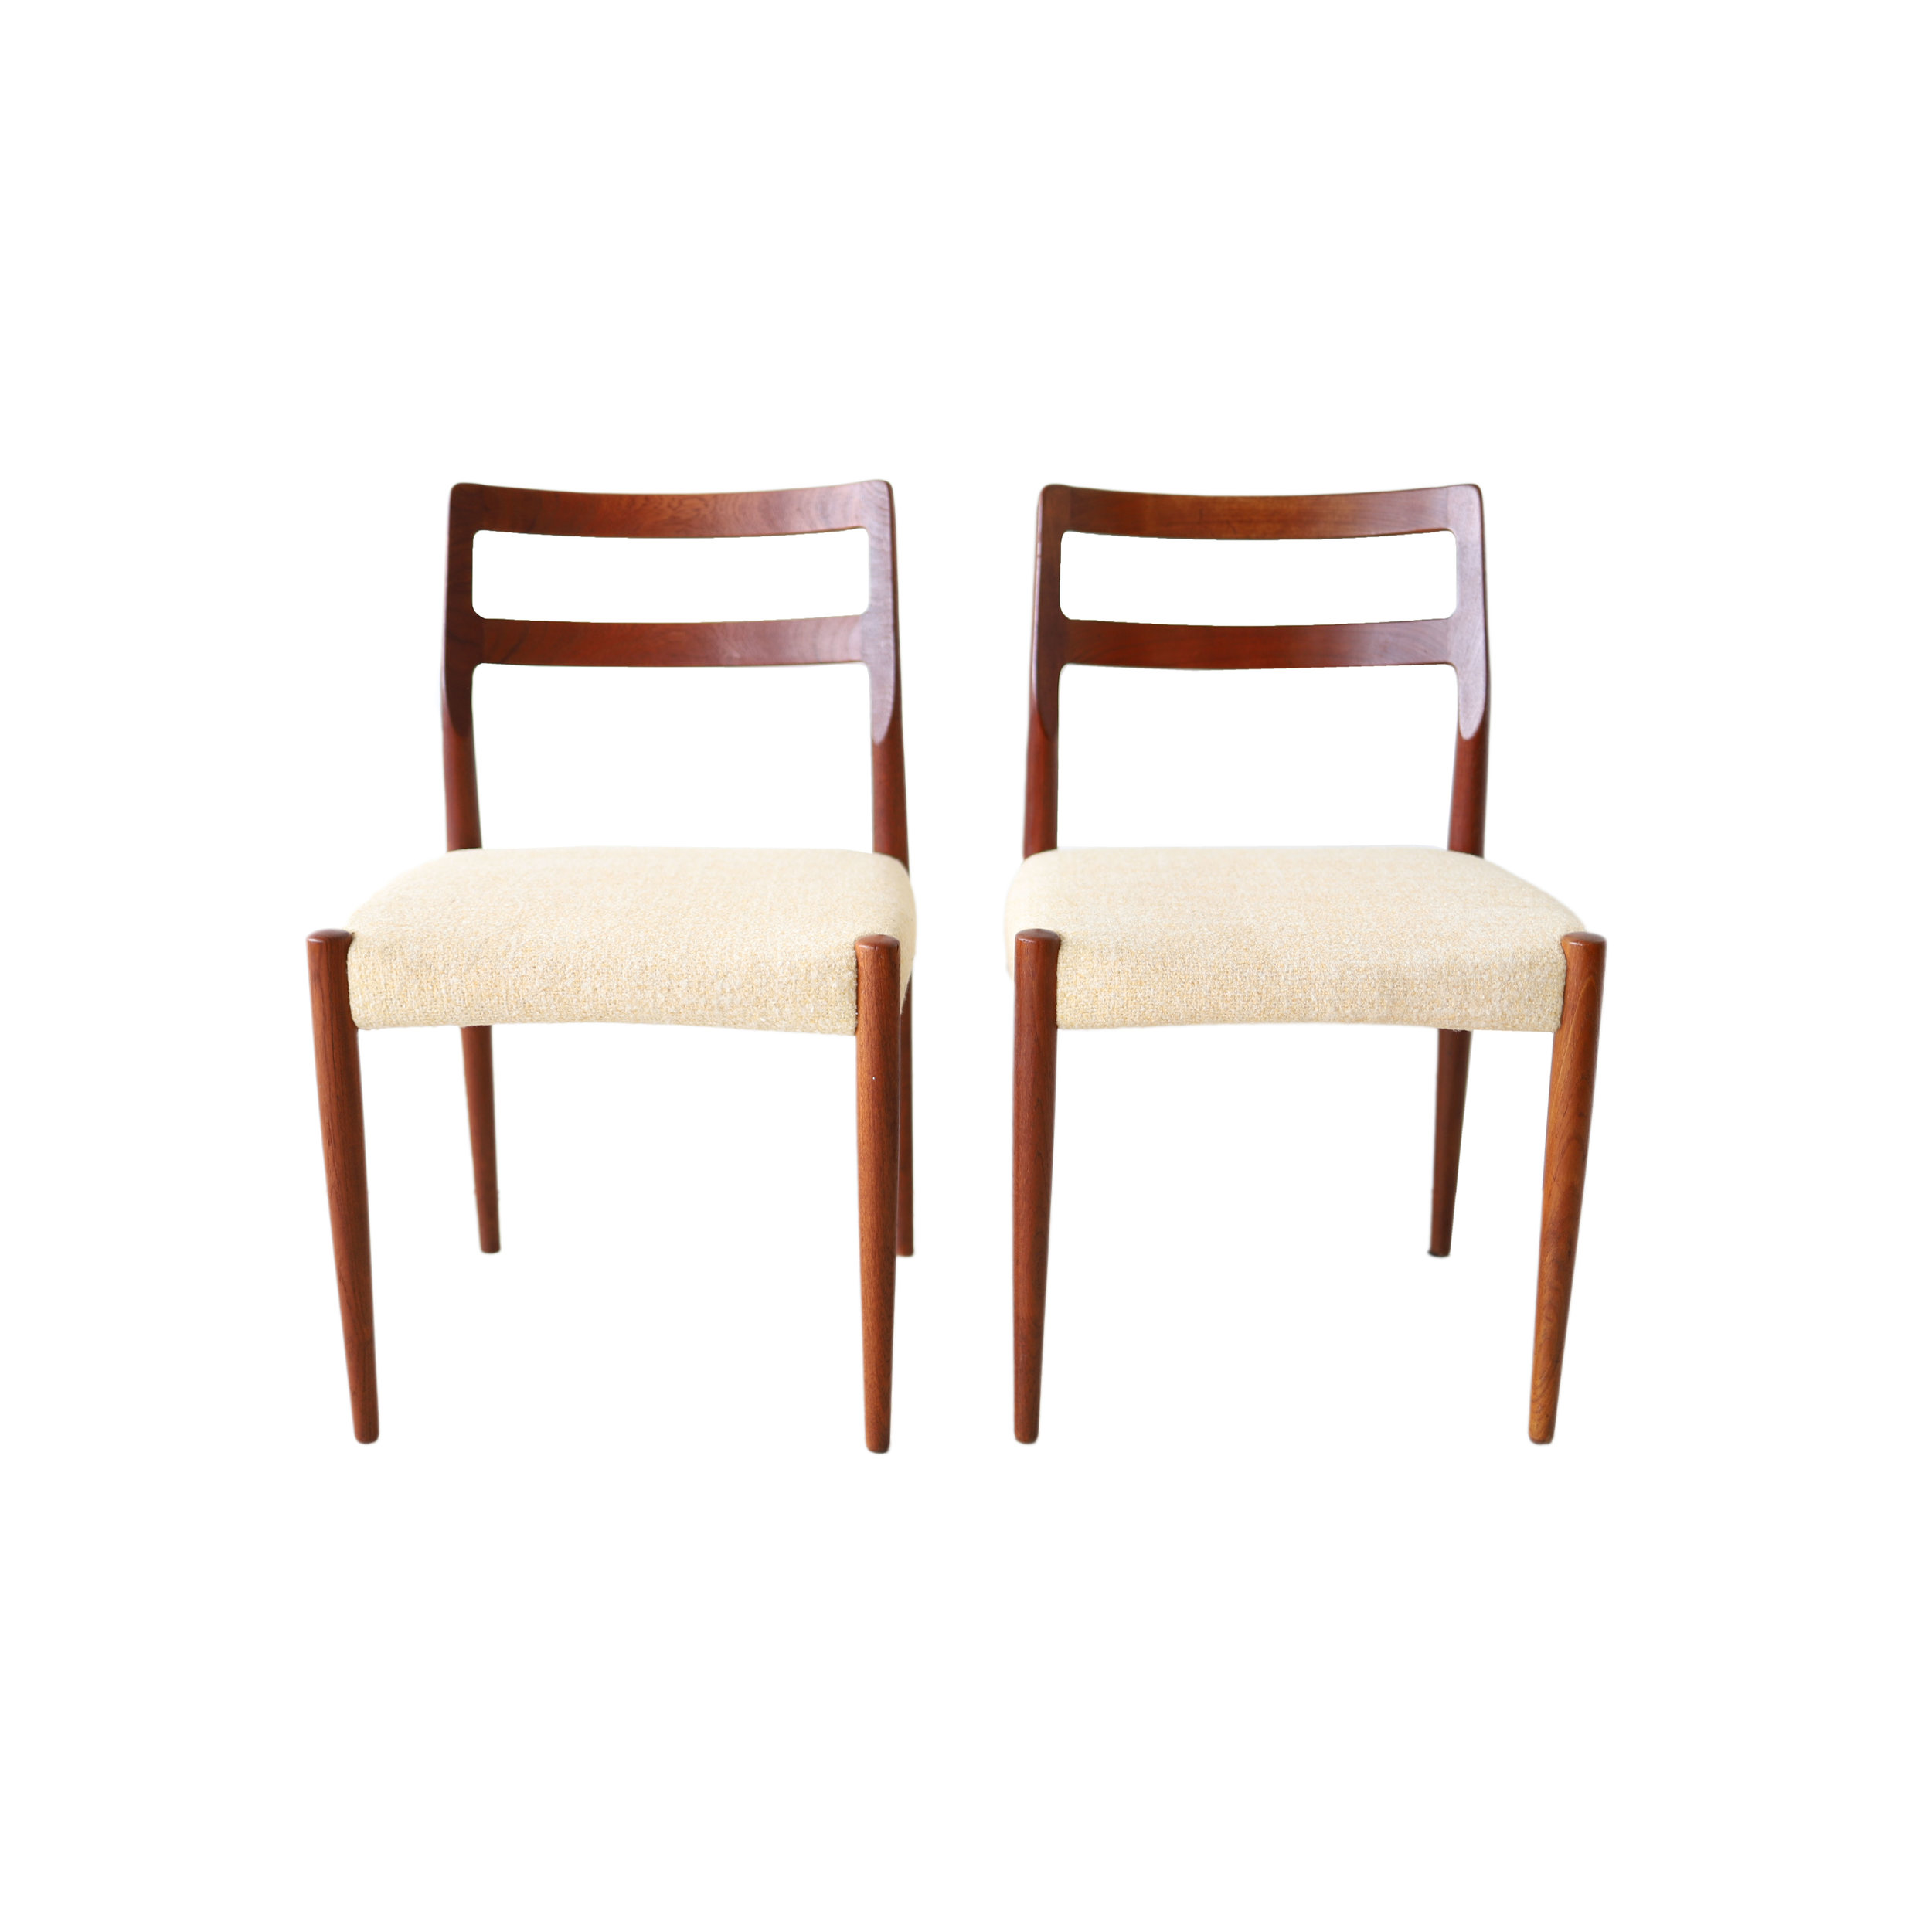 At 1st Sight Products Pair Of Vintage Mid Century Modern Danish Teak Dining Chairs